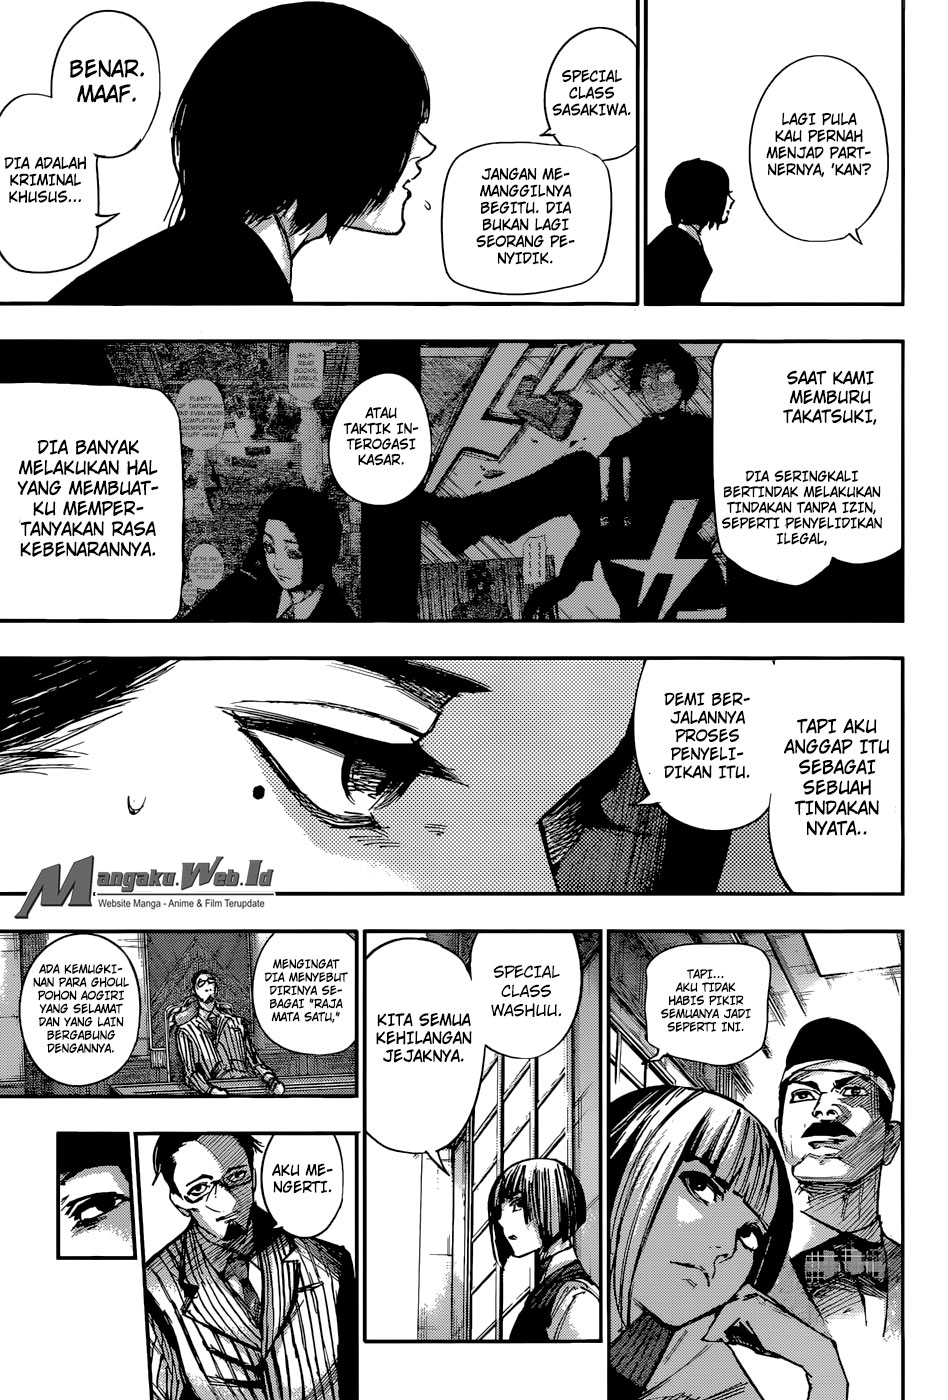 Tokyo Ghoul:re Chapter 100-6